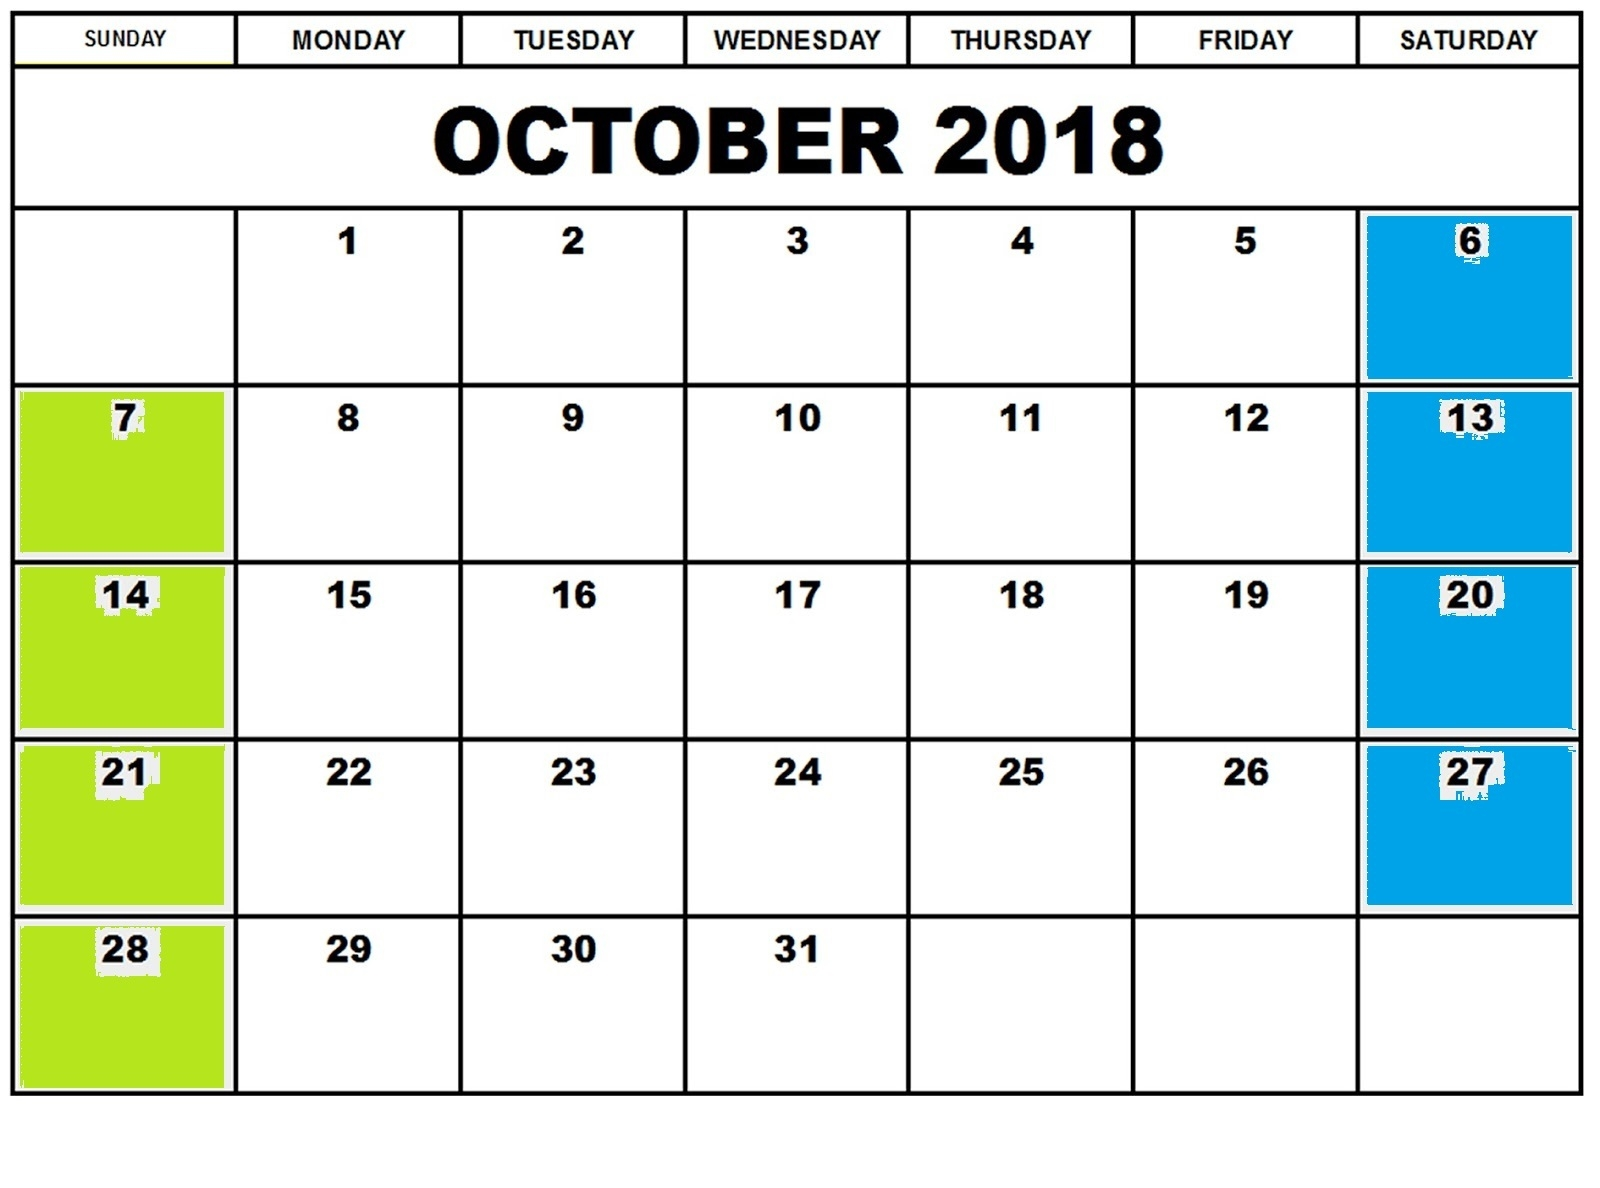 october 2018 monthly calendar template printable calendar Free October 2018 Calendar Word Document erdferdf